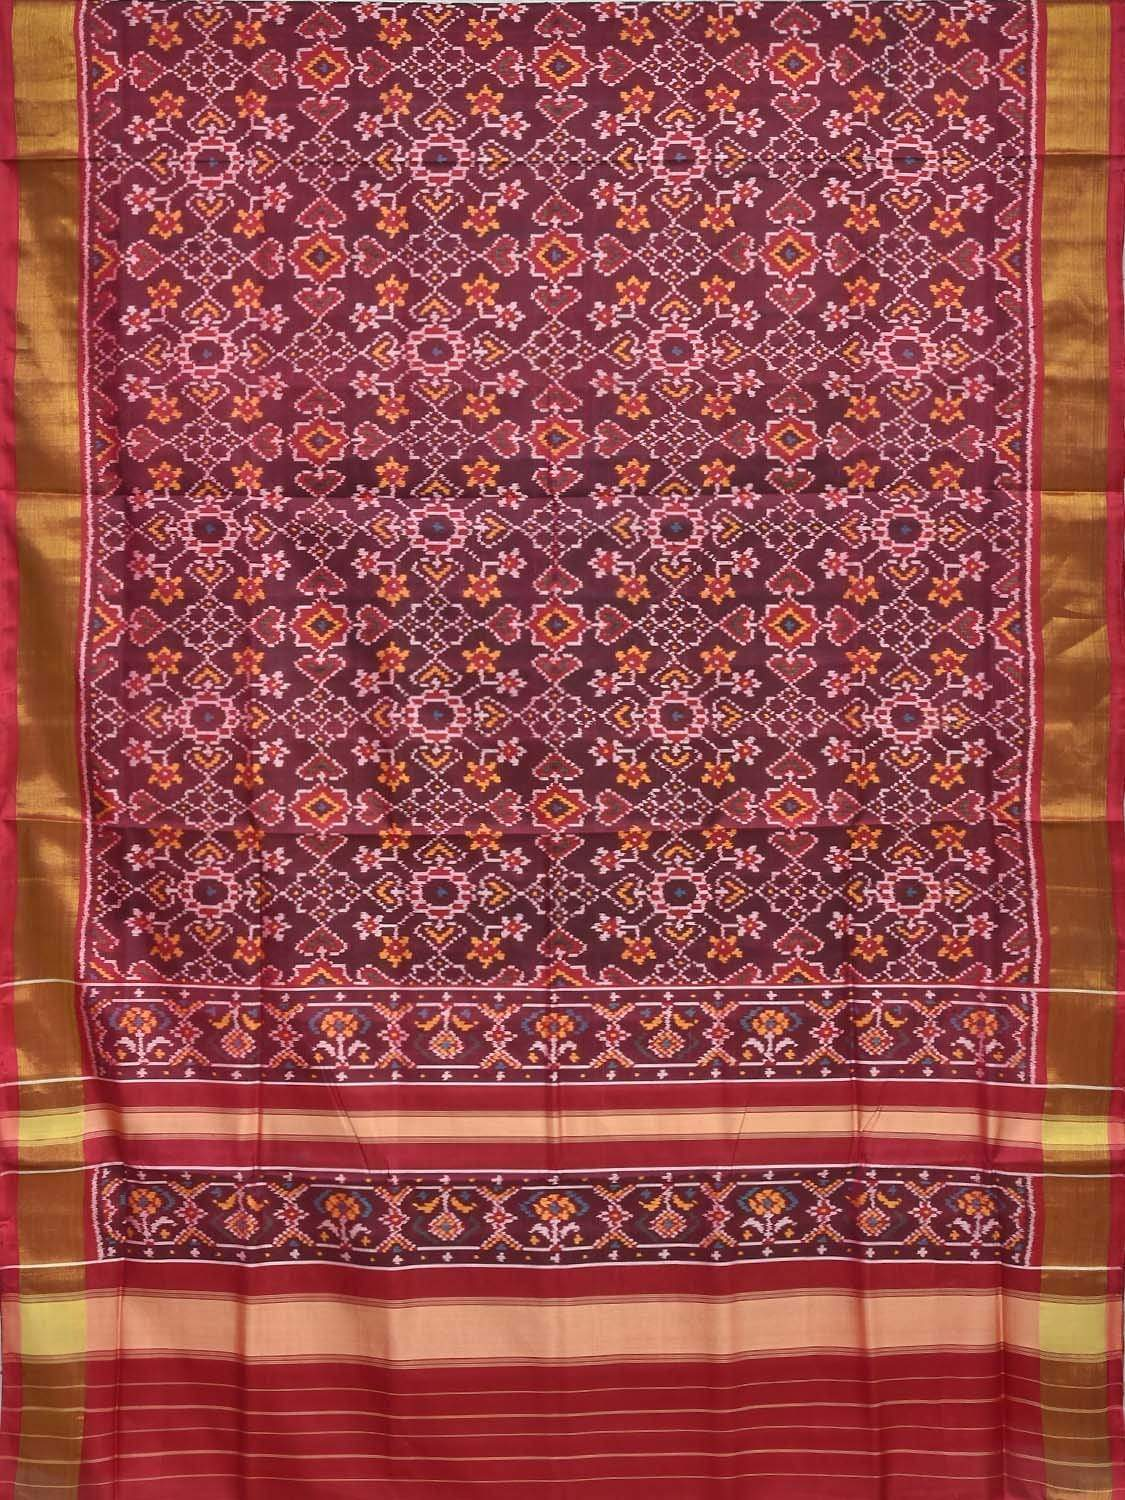 Maroon Pochampally Ikat Silk Handloom Saree with All Over Patola Design i0524